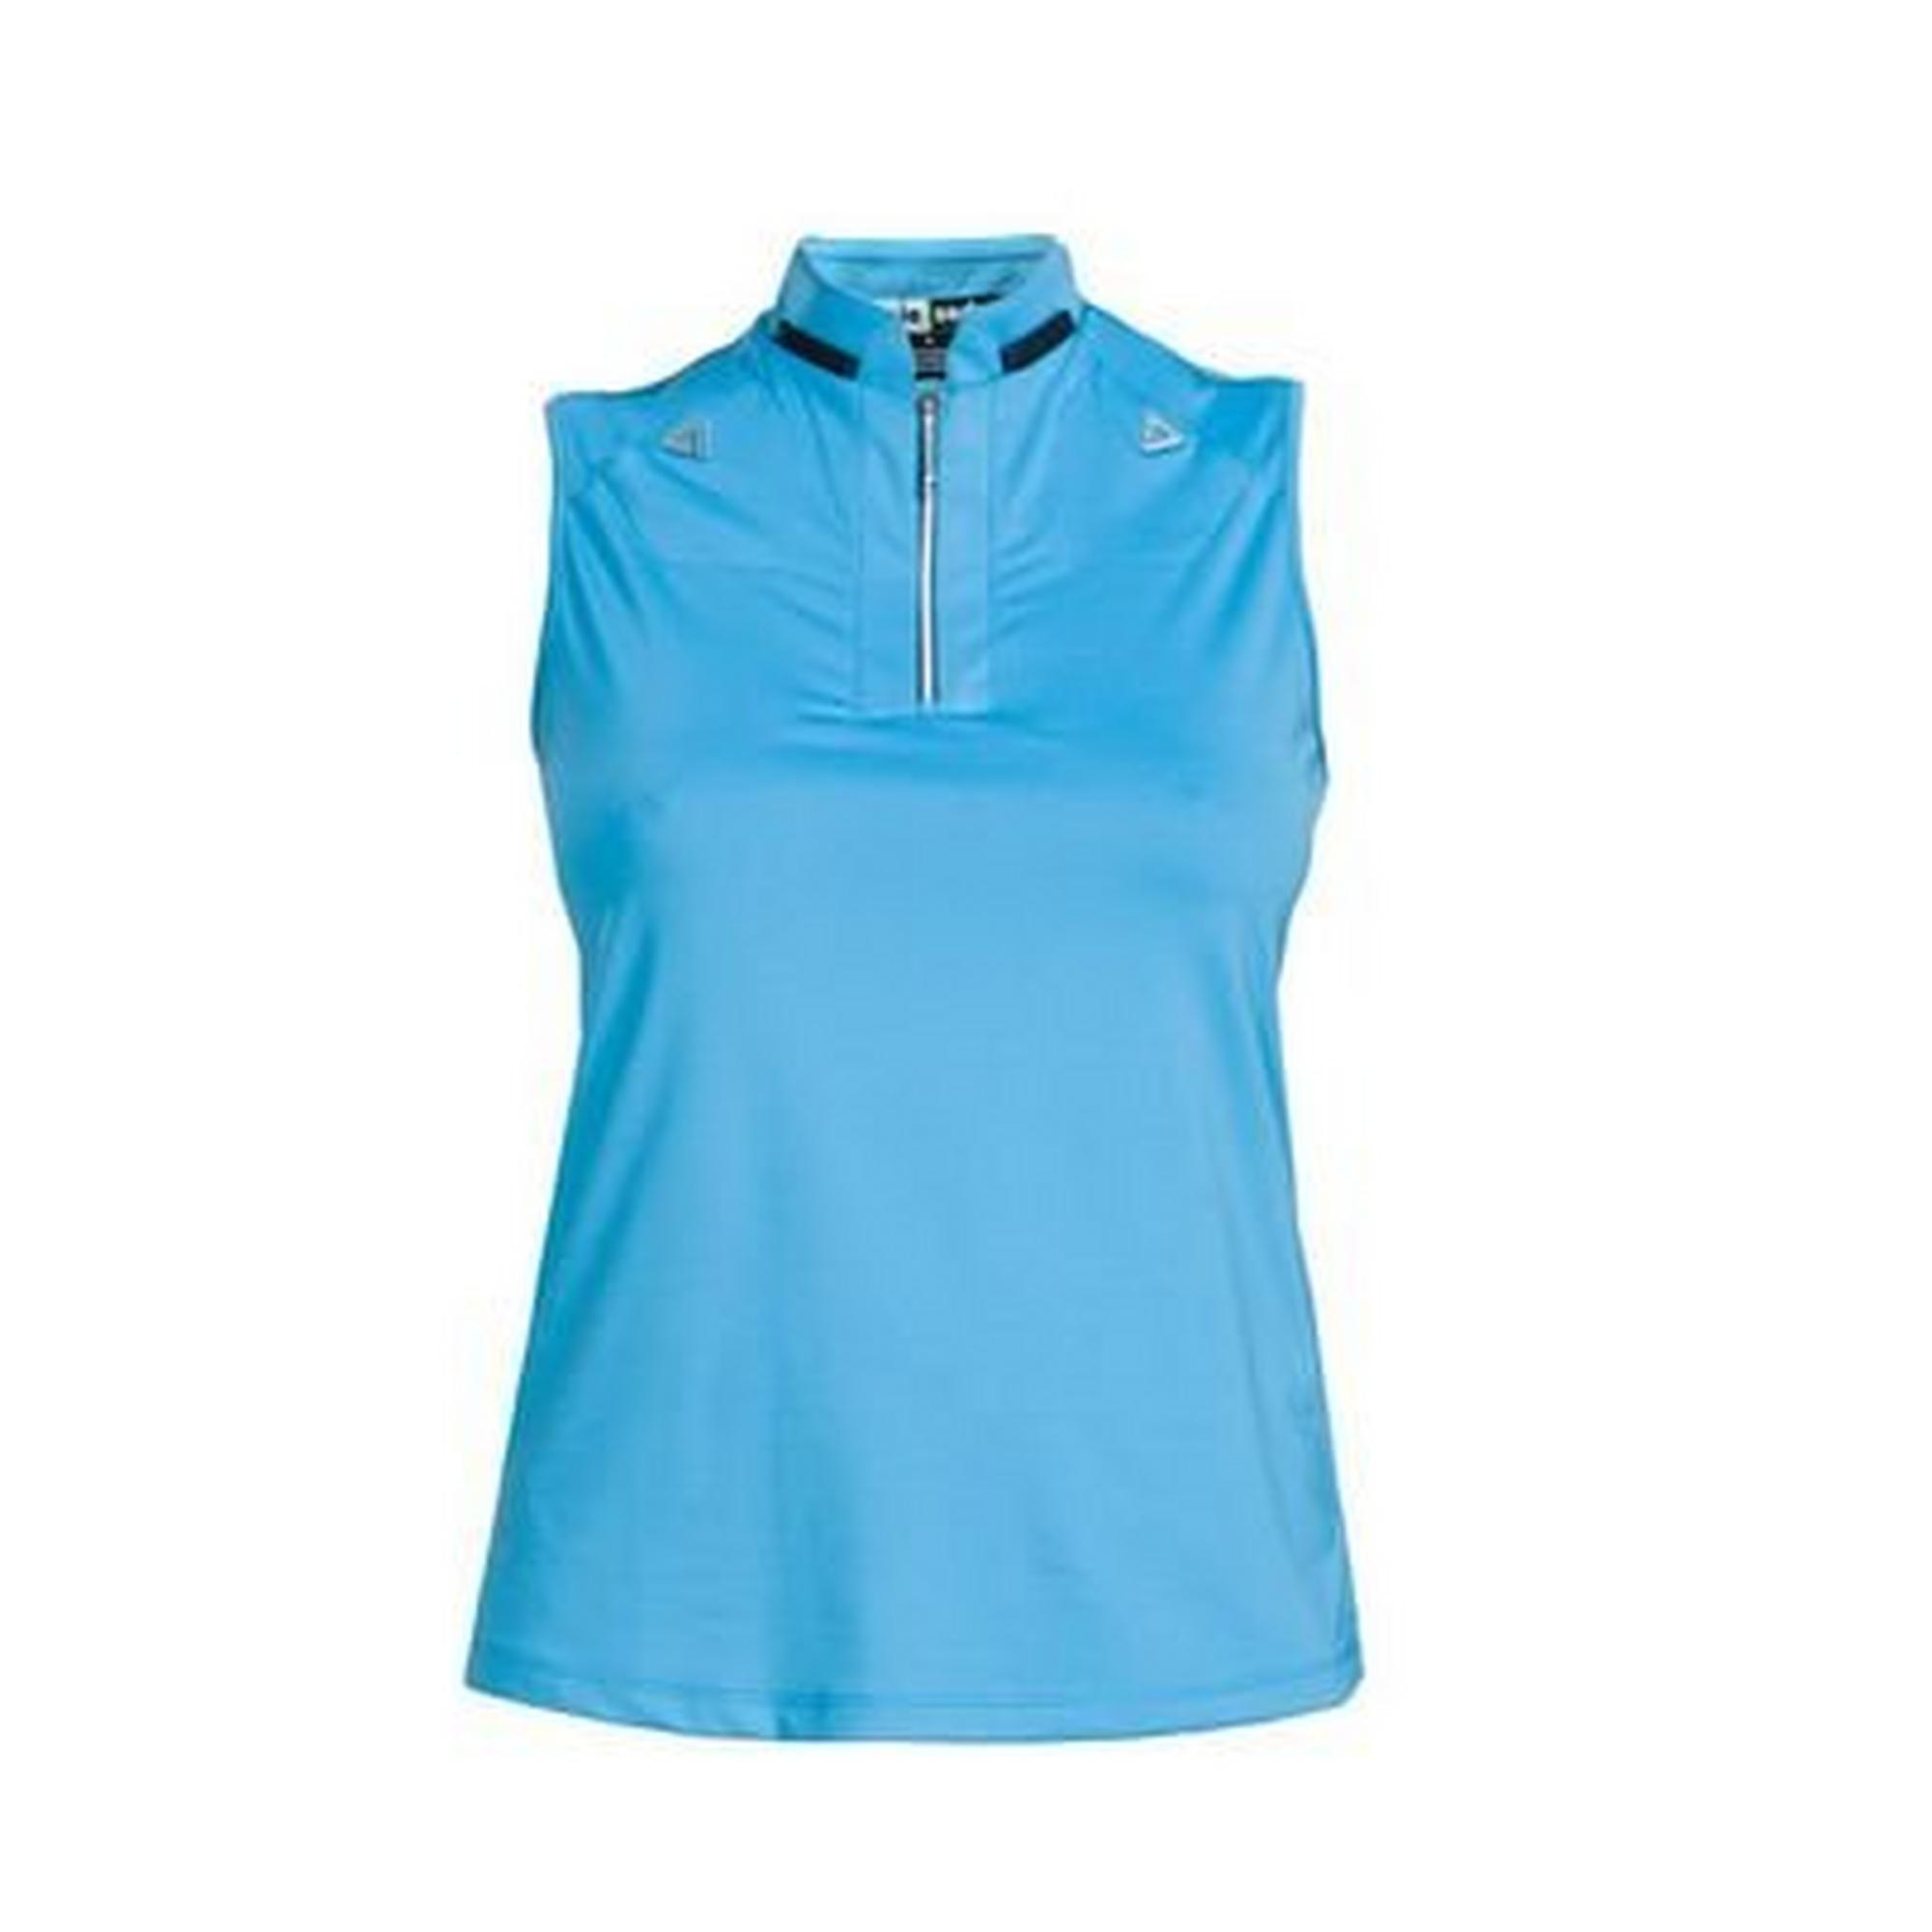 Women's Solid Sleeveless Top